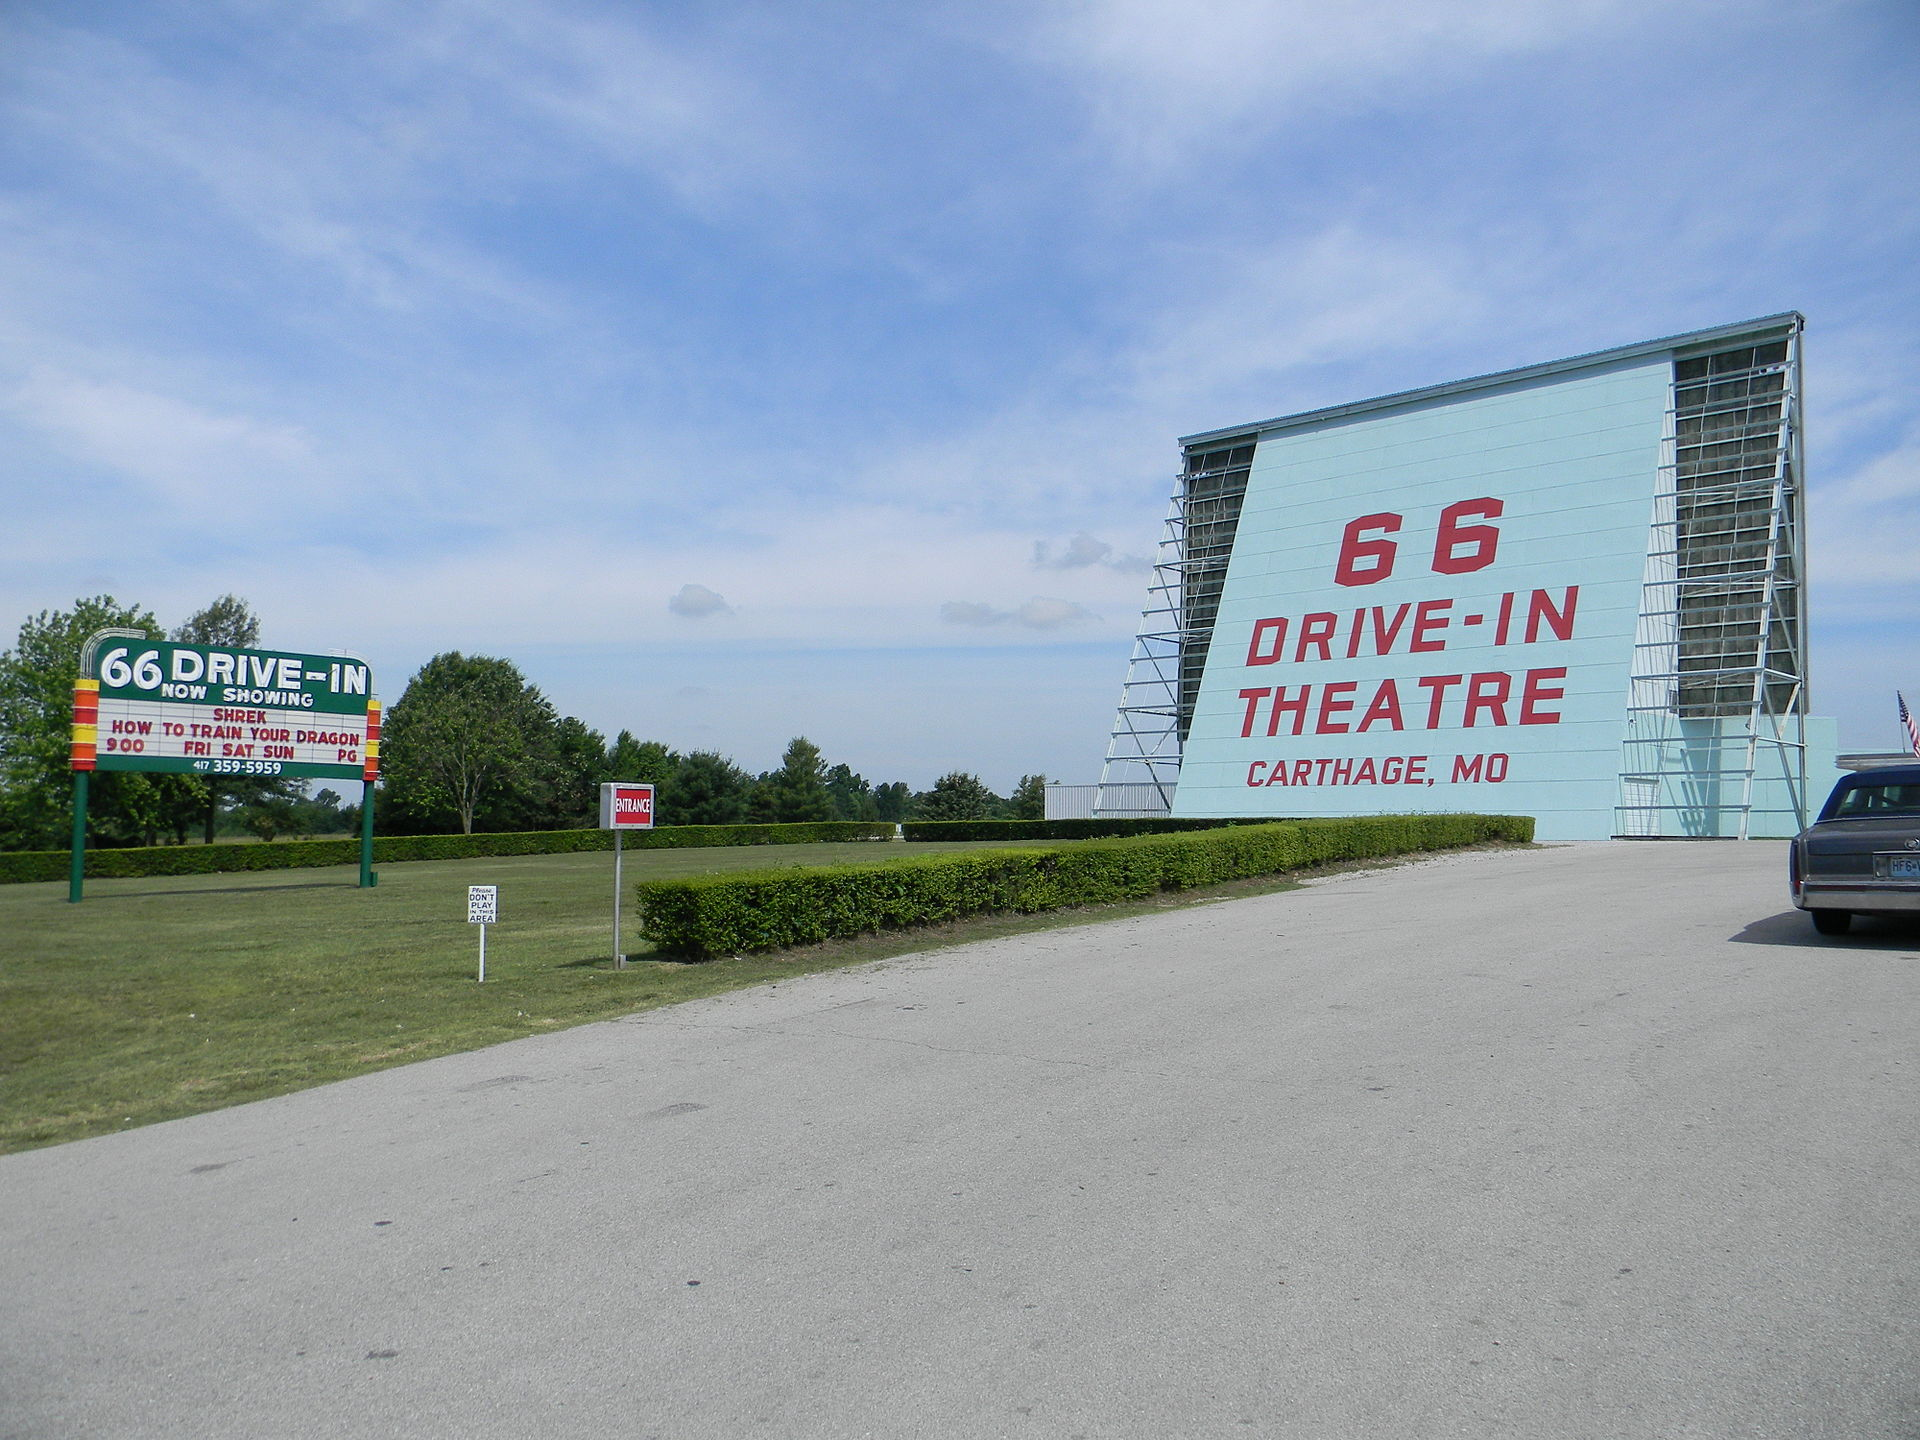 Entrance to the theater